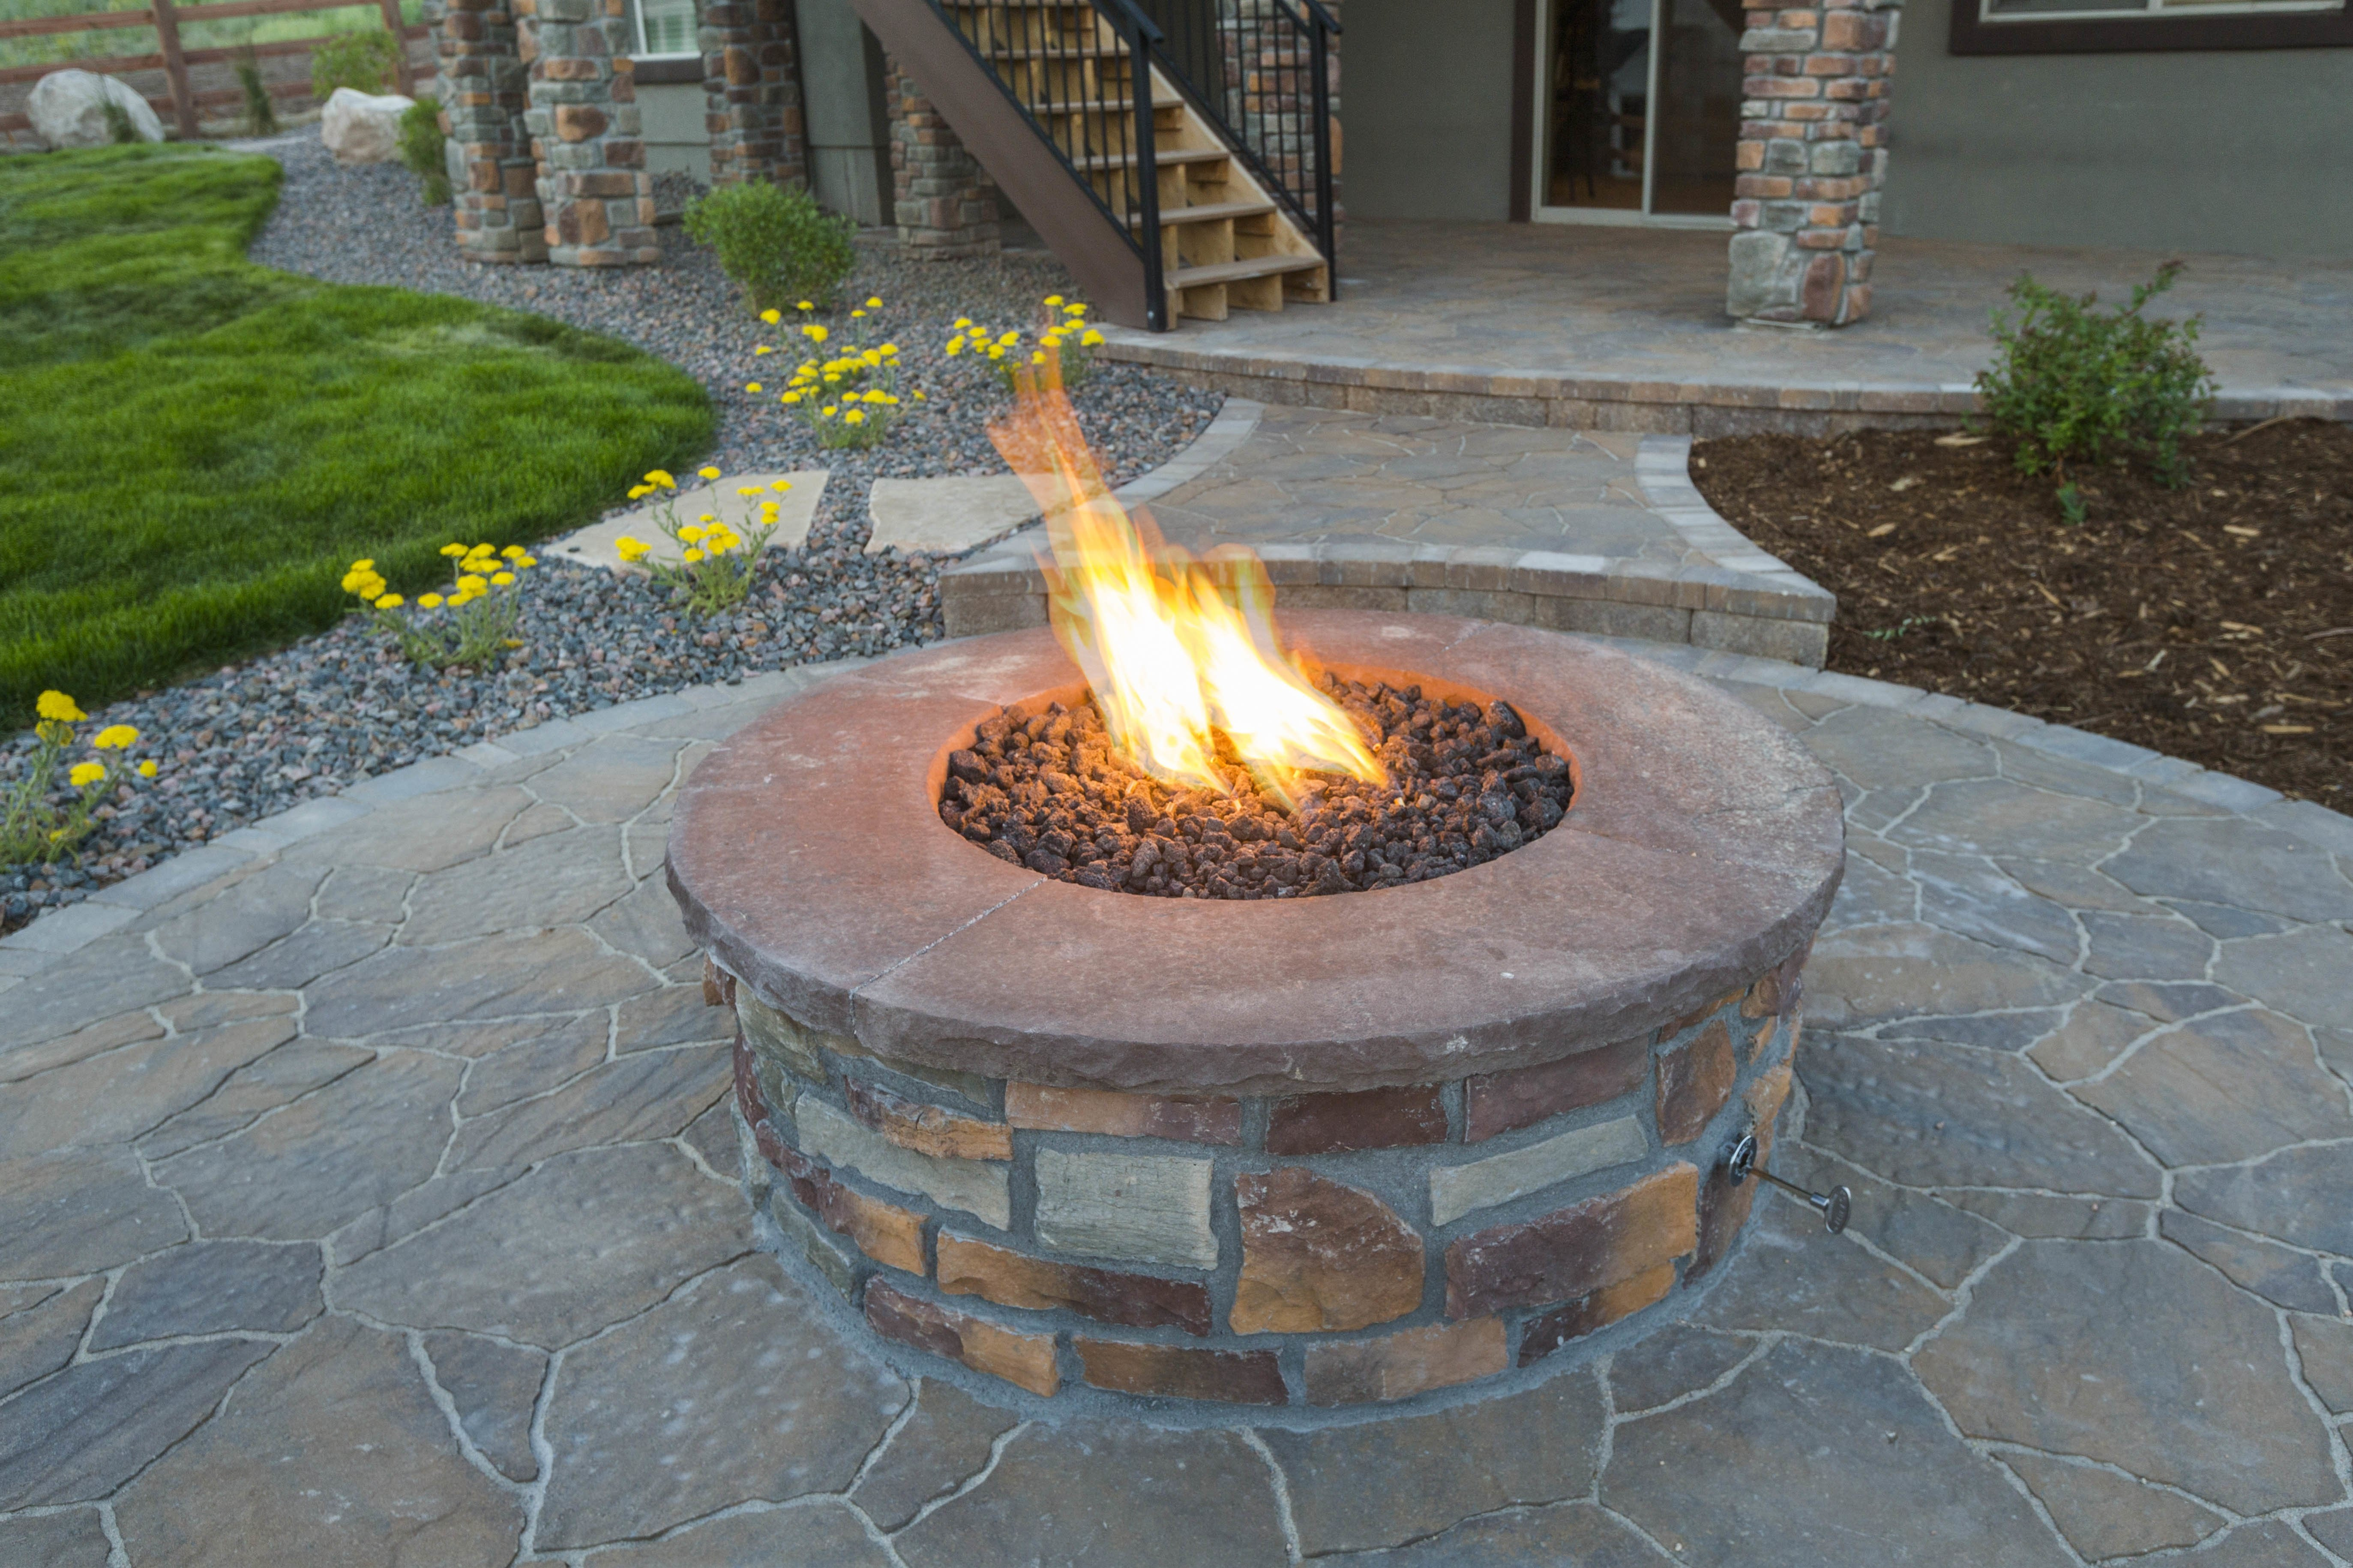 Baton Rouge Fireplace And Fire Pit Furnishings For Fall